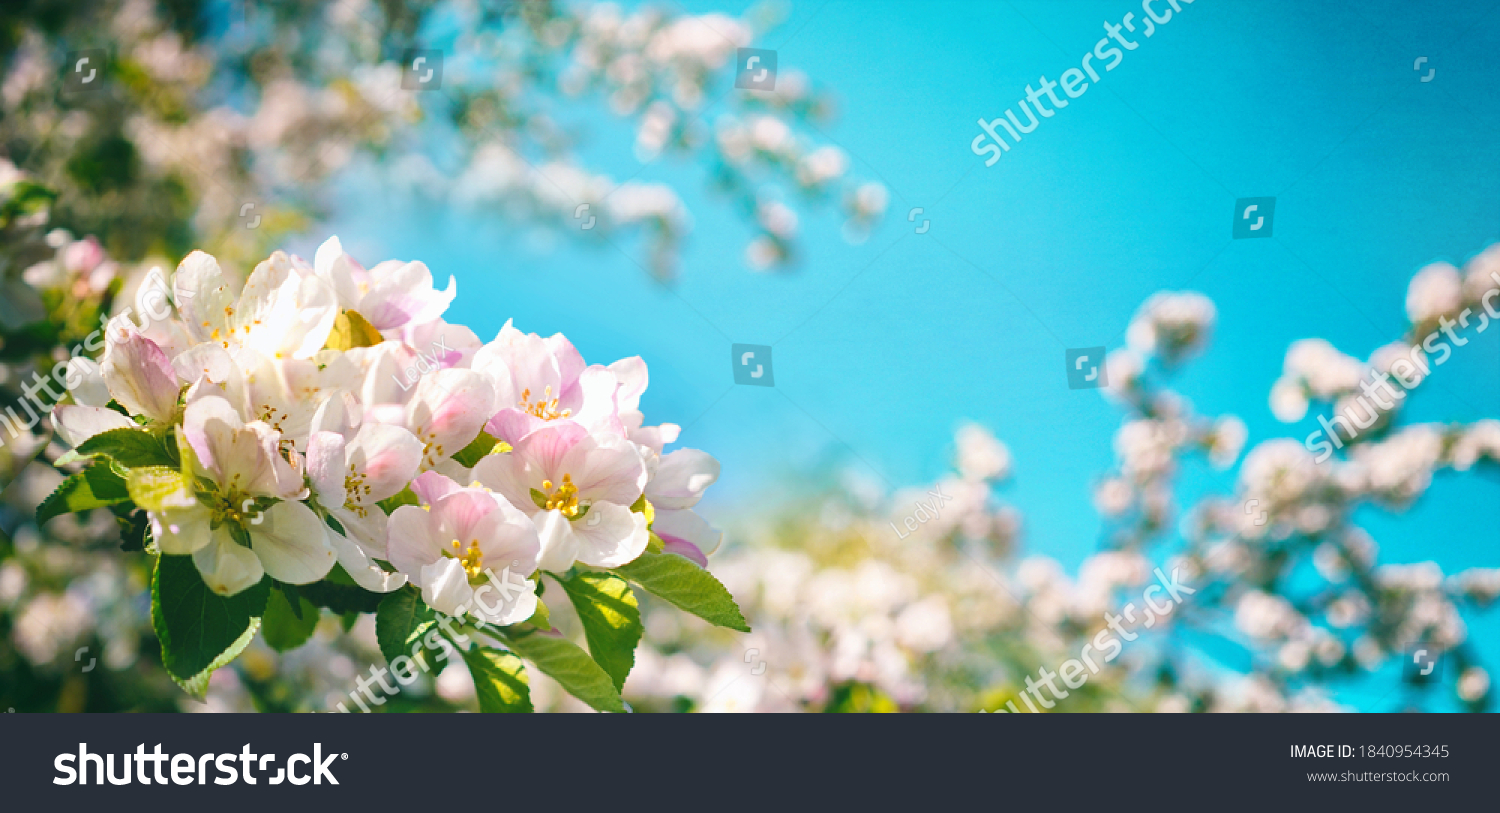 Pink flowers of blooming Apple tree in spring against blue sky on a Sunny day close-up macro in nature outdoors. #1840954345